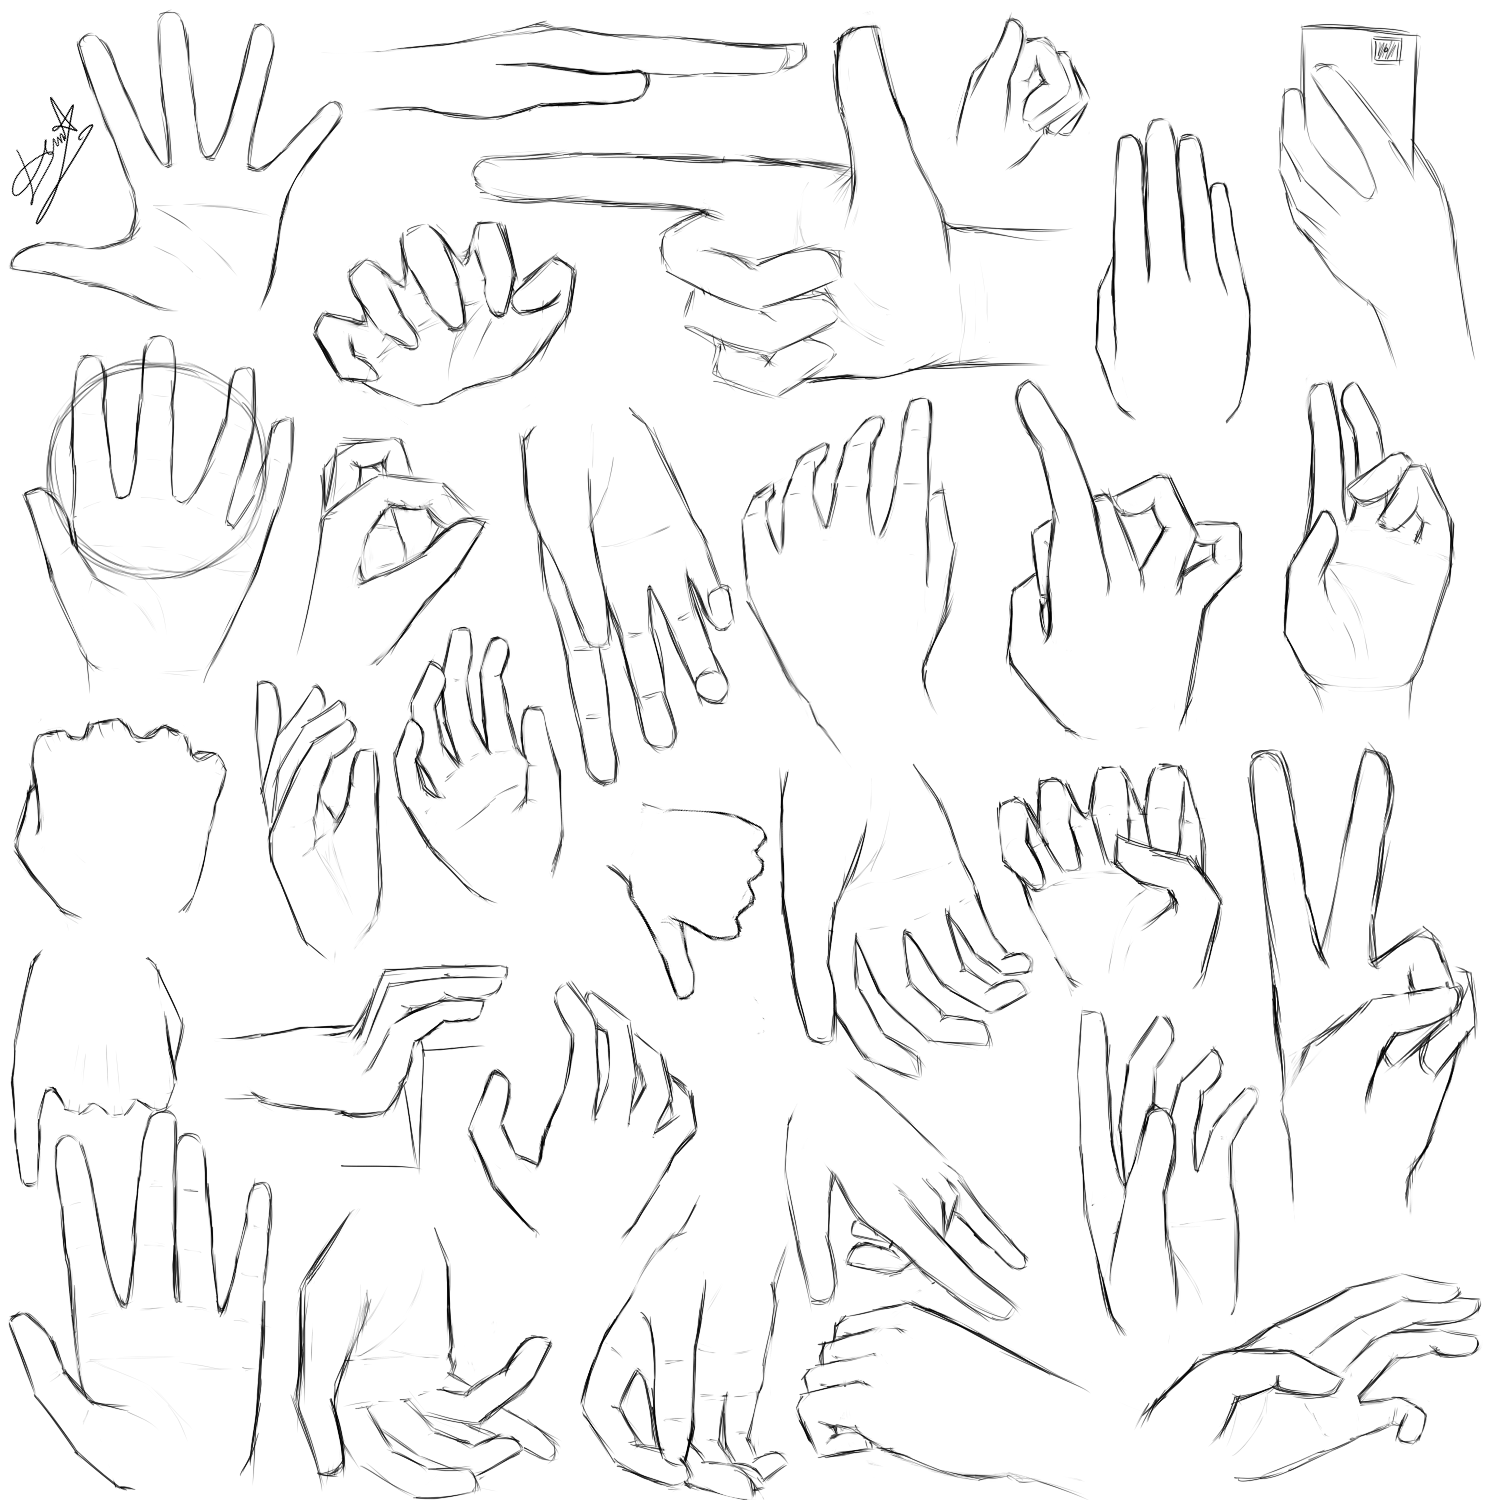 anime hand drawing at getdrawings com free for personal use anime